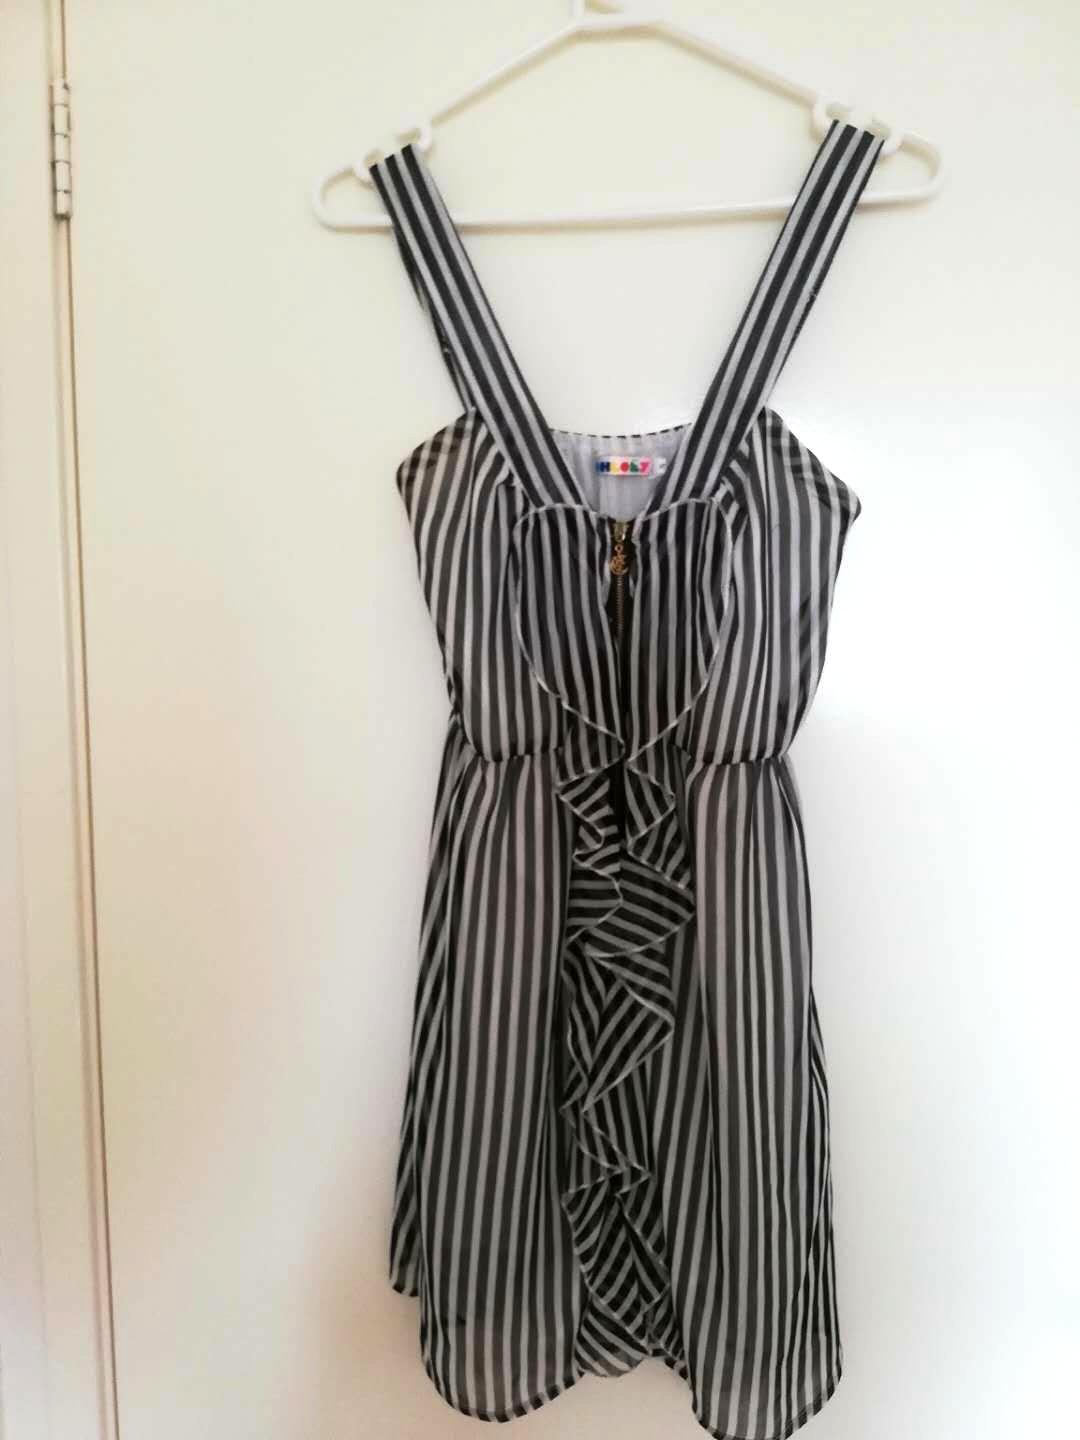 Flowy black and white striped heart dress size 8 / 10